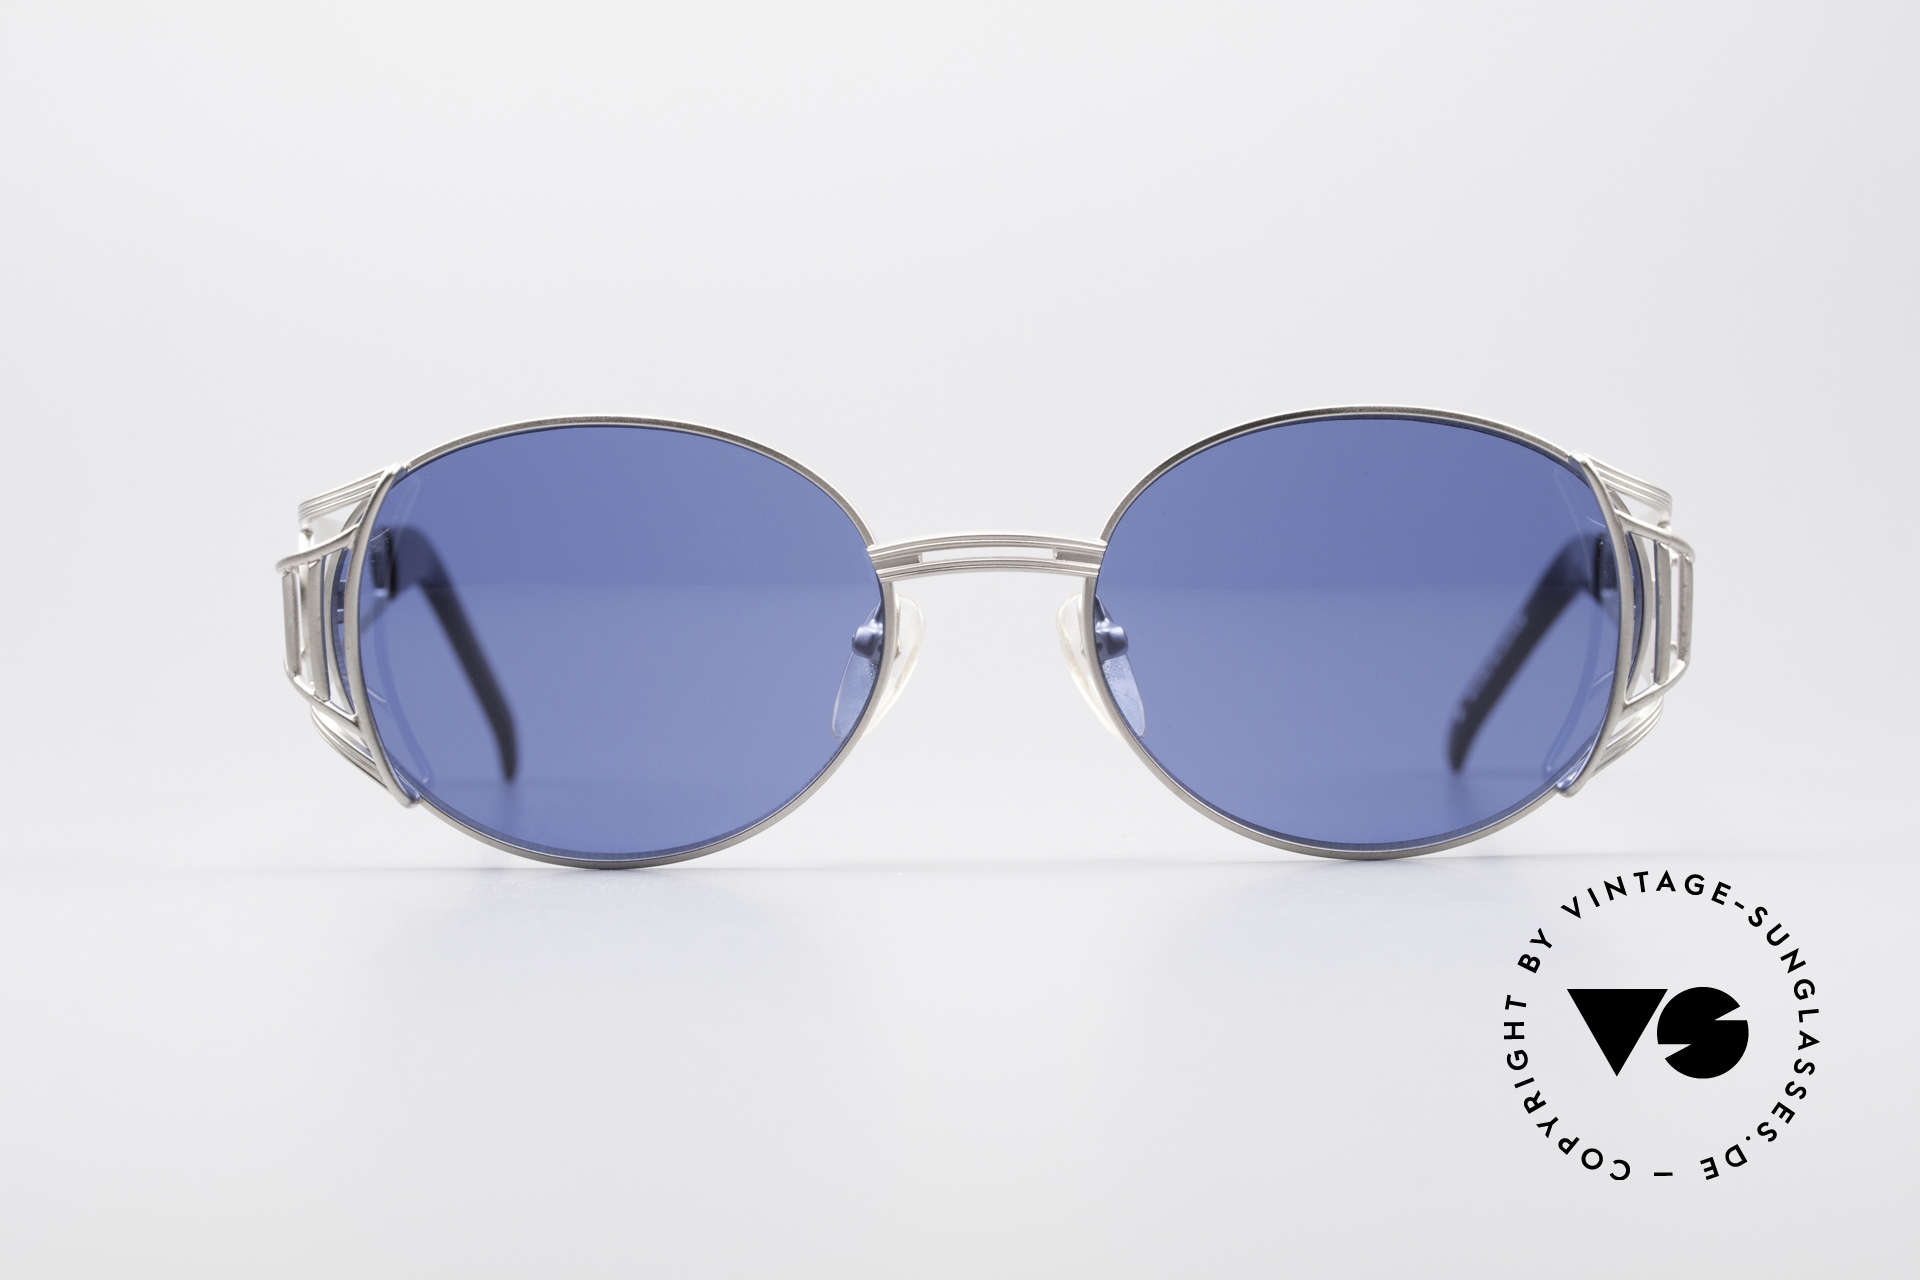 Jean Paul Gaultier 58-6102 Steampunk Sunglasses, titanium-gray JPG designer sunglasses from 1997, Made for Men and Women